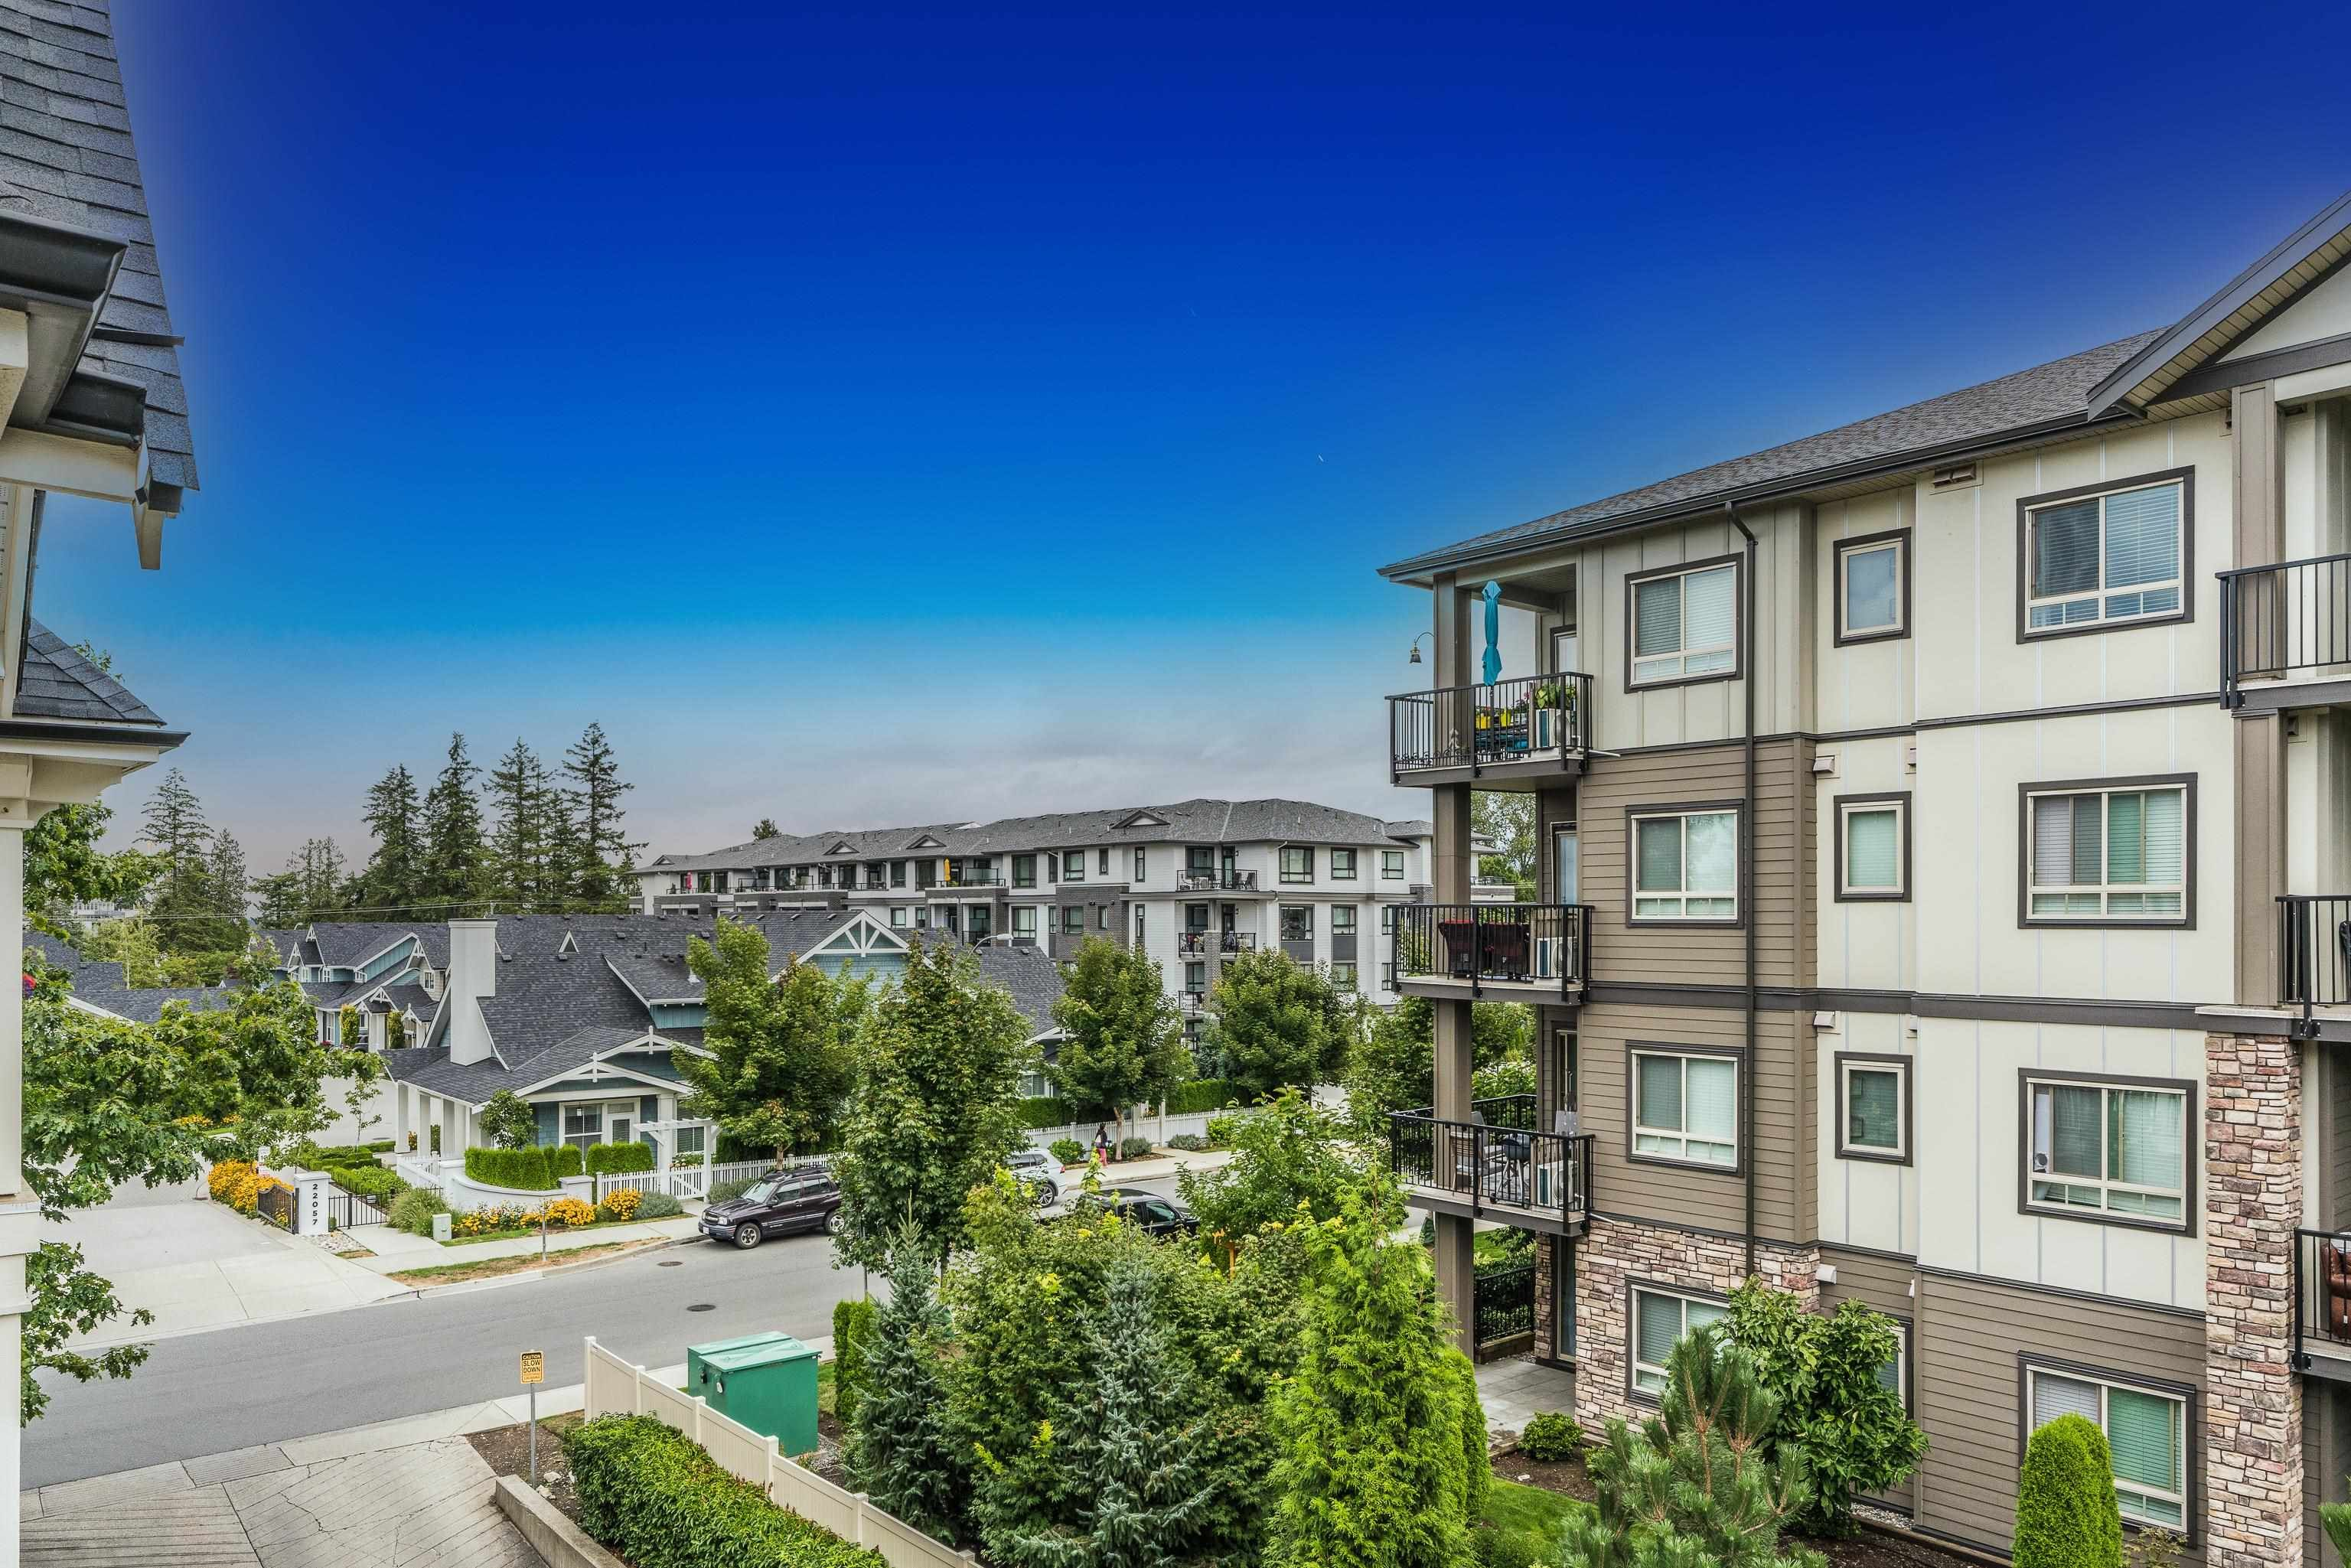 """Photo 12: Photos: 407 22022 49 Avenue in Langley: Murrayville Condo for sale in """"Murray Green"""" : MLS®# R2613823"""